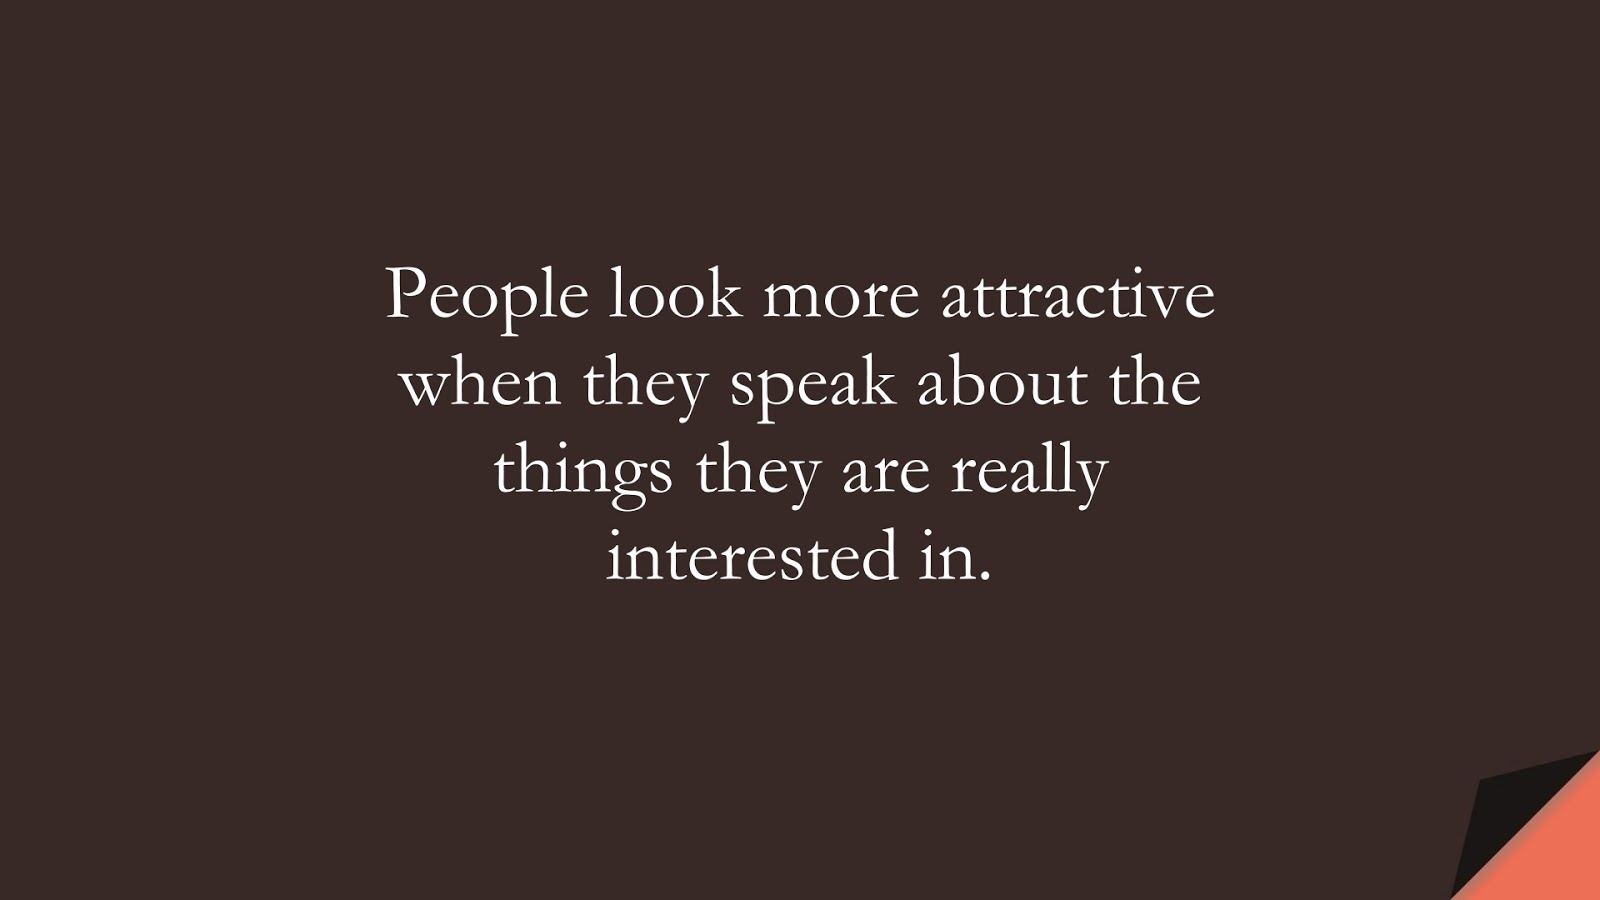 People look more attractive when they speak about the things they are really interested in.FALSE